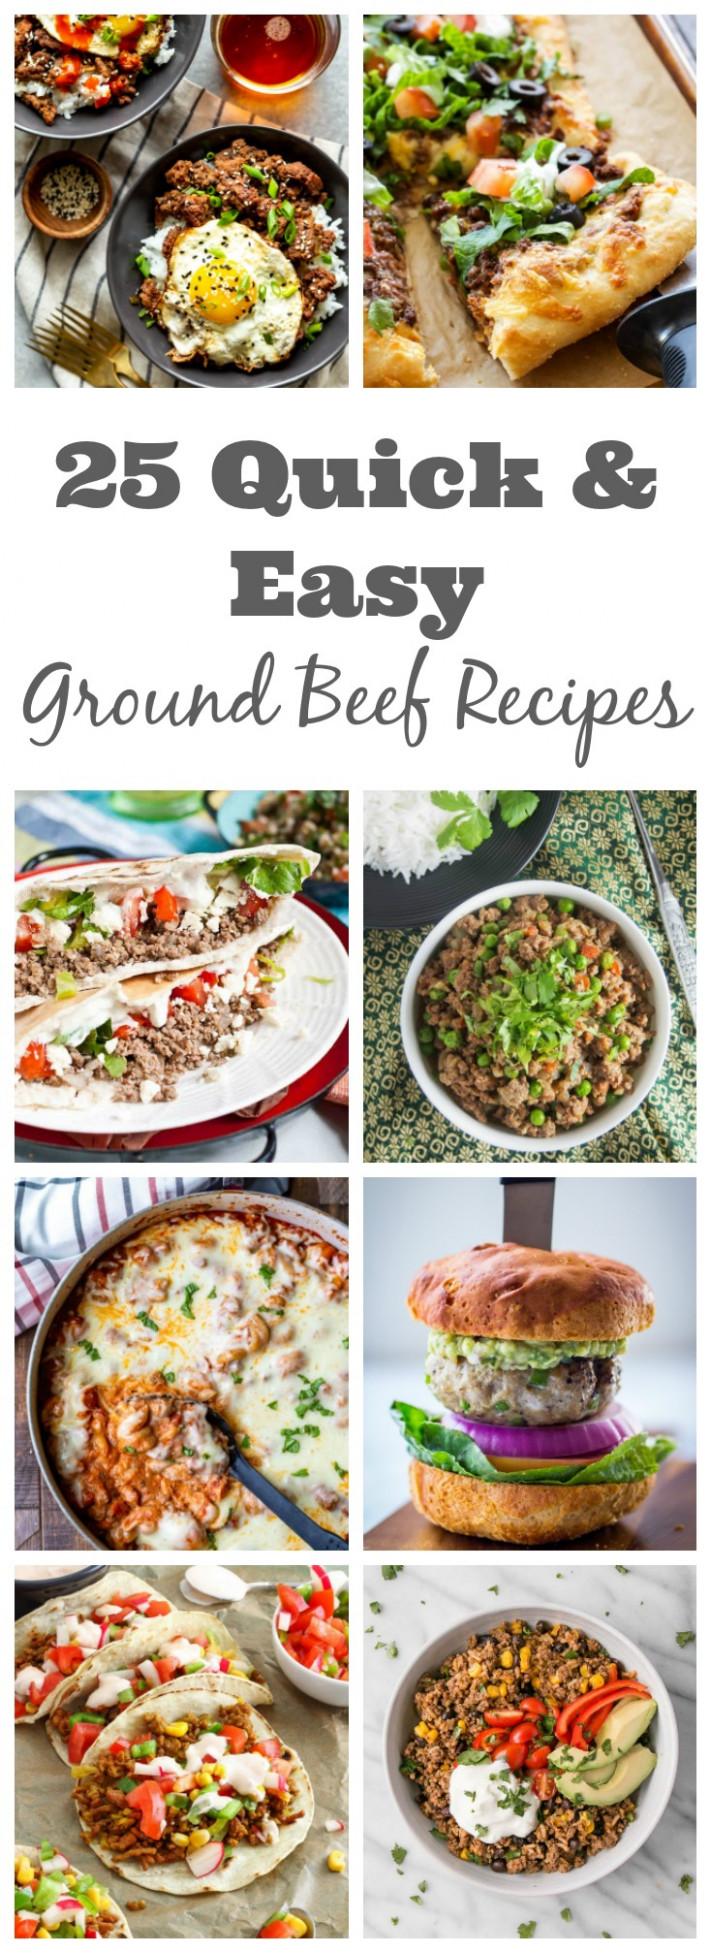 11 Quick & Easy Ground Beef Recipes - Fox and Briar - beef recipes dinner